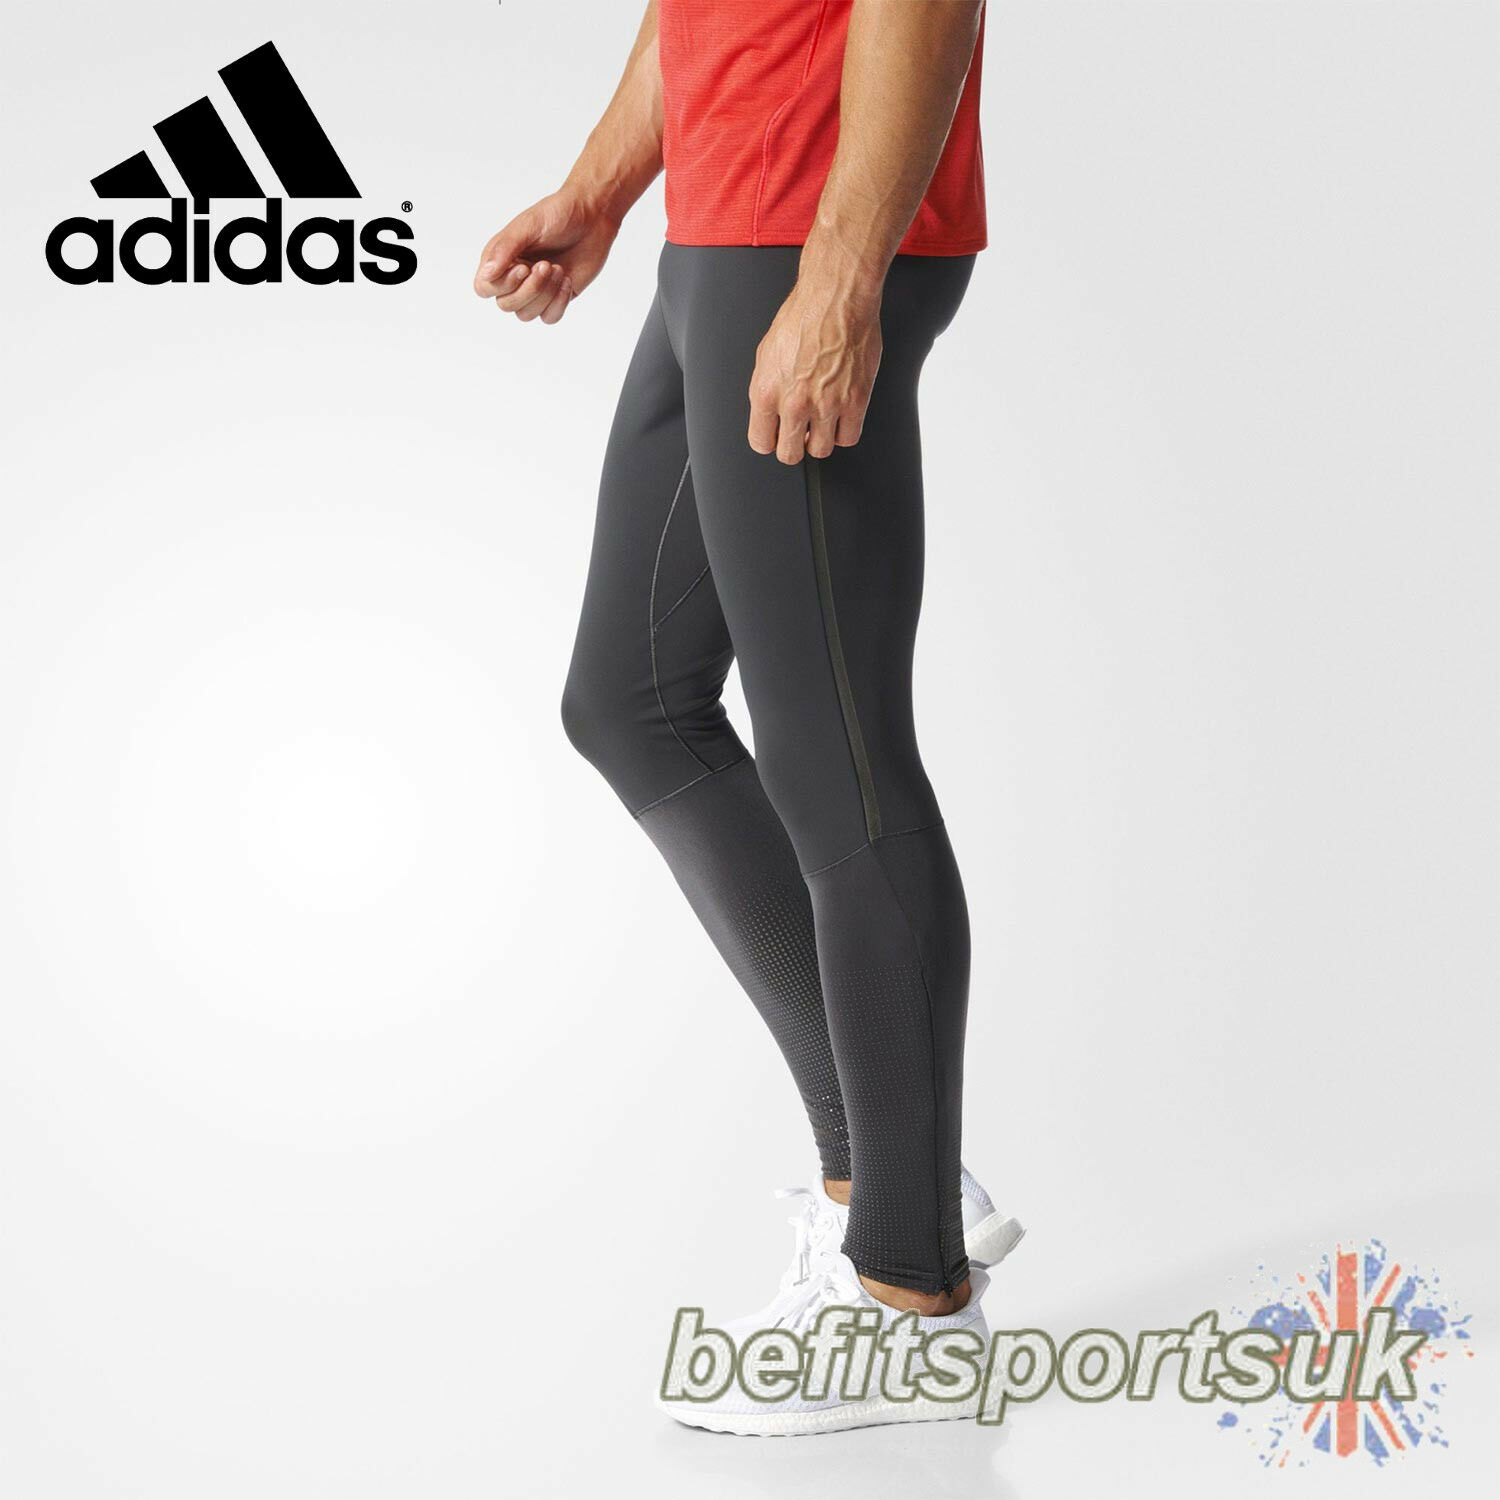 ADIDAS MENS CLIMAHEAT ZIP WARM THERMAL WINTER RUNNING TIGHTS LEGGINGS S M L XL